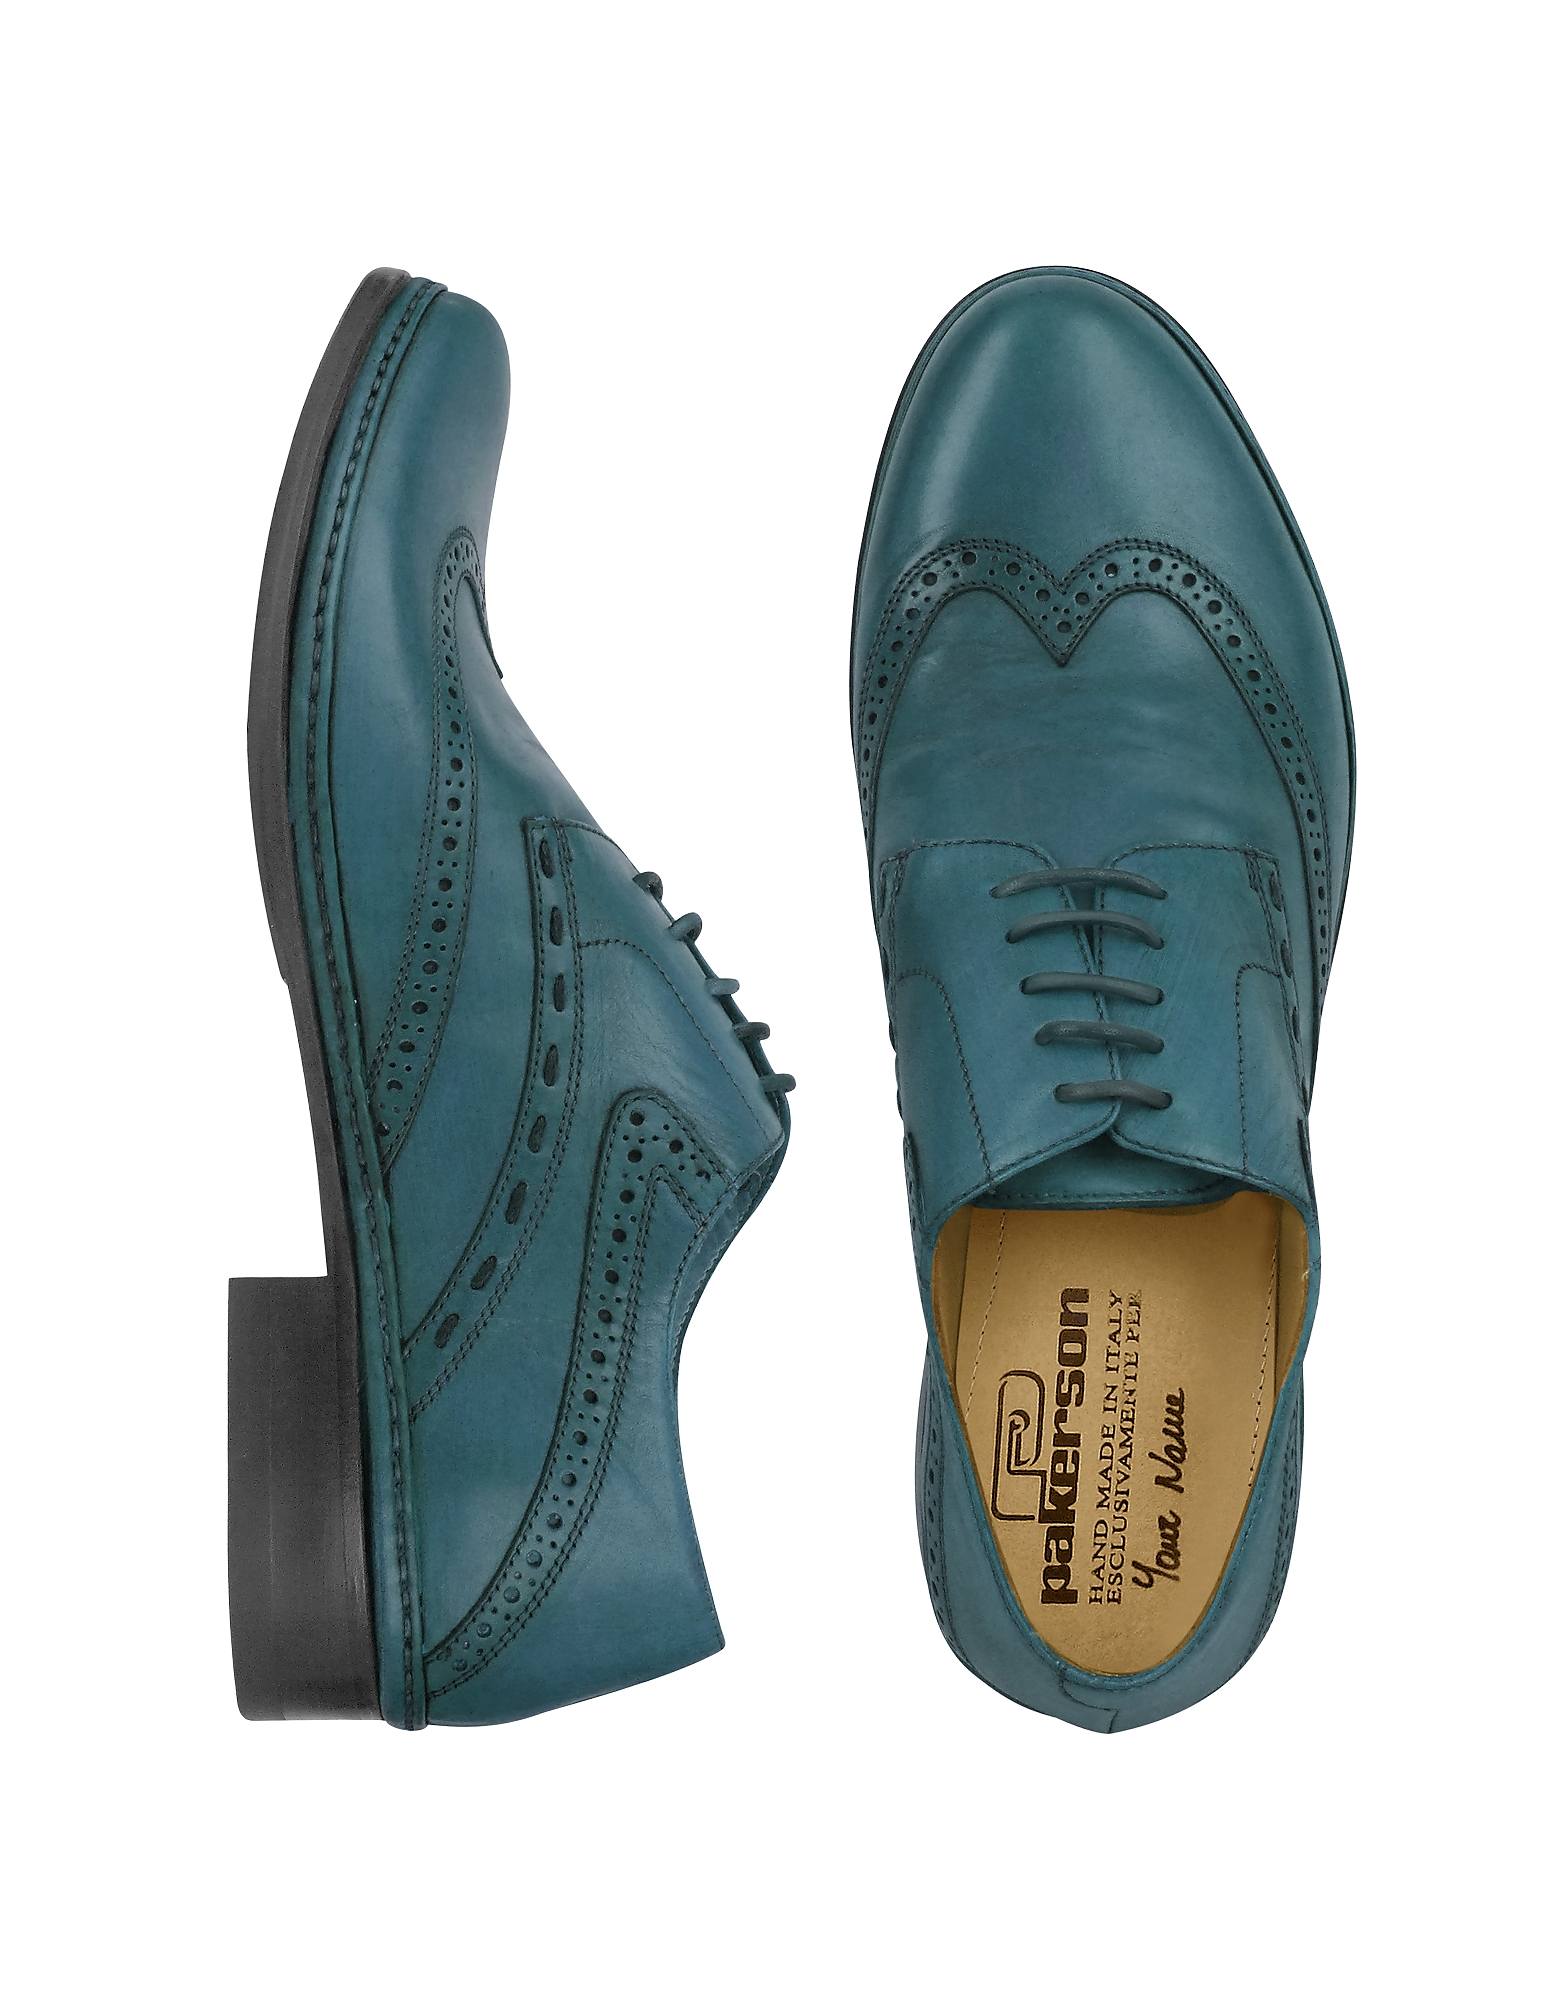 Pakerson Shoes, Petrol Blue Handmade Italian Leather Wingtip Oxford Shoes